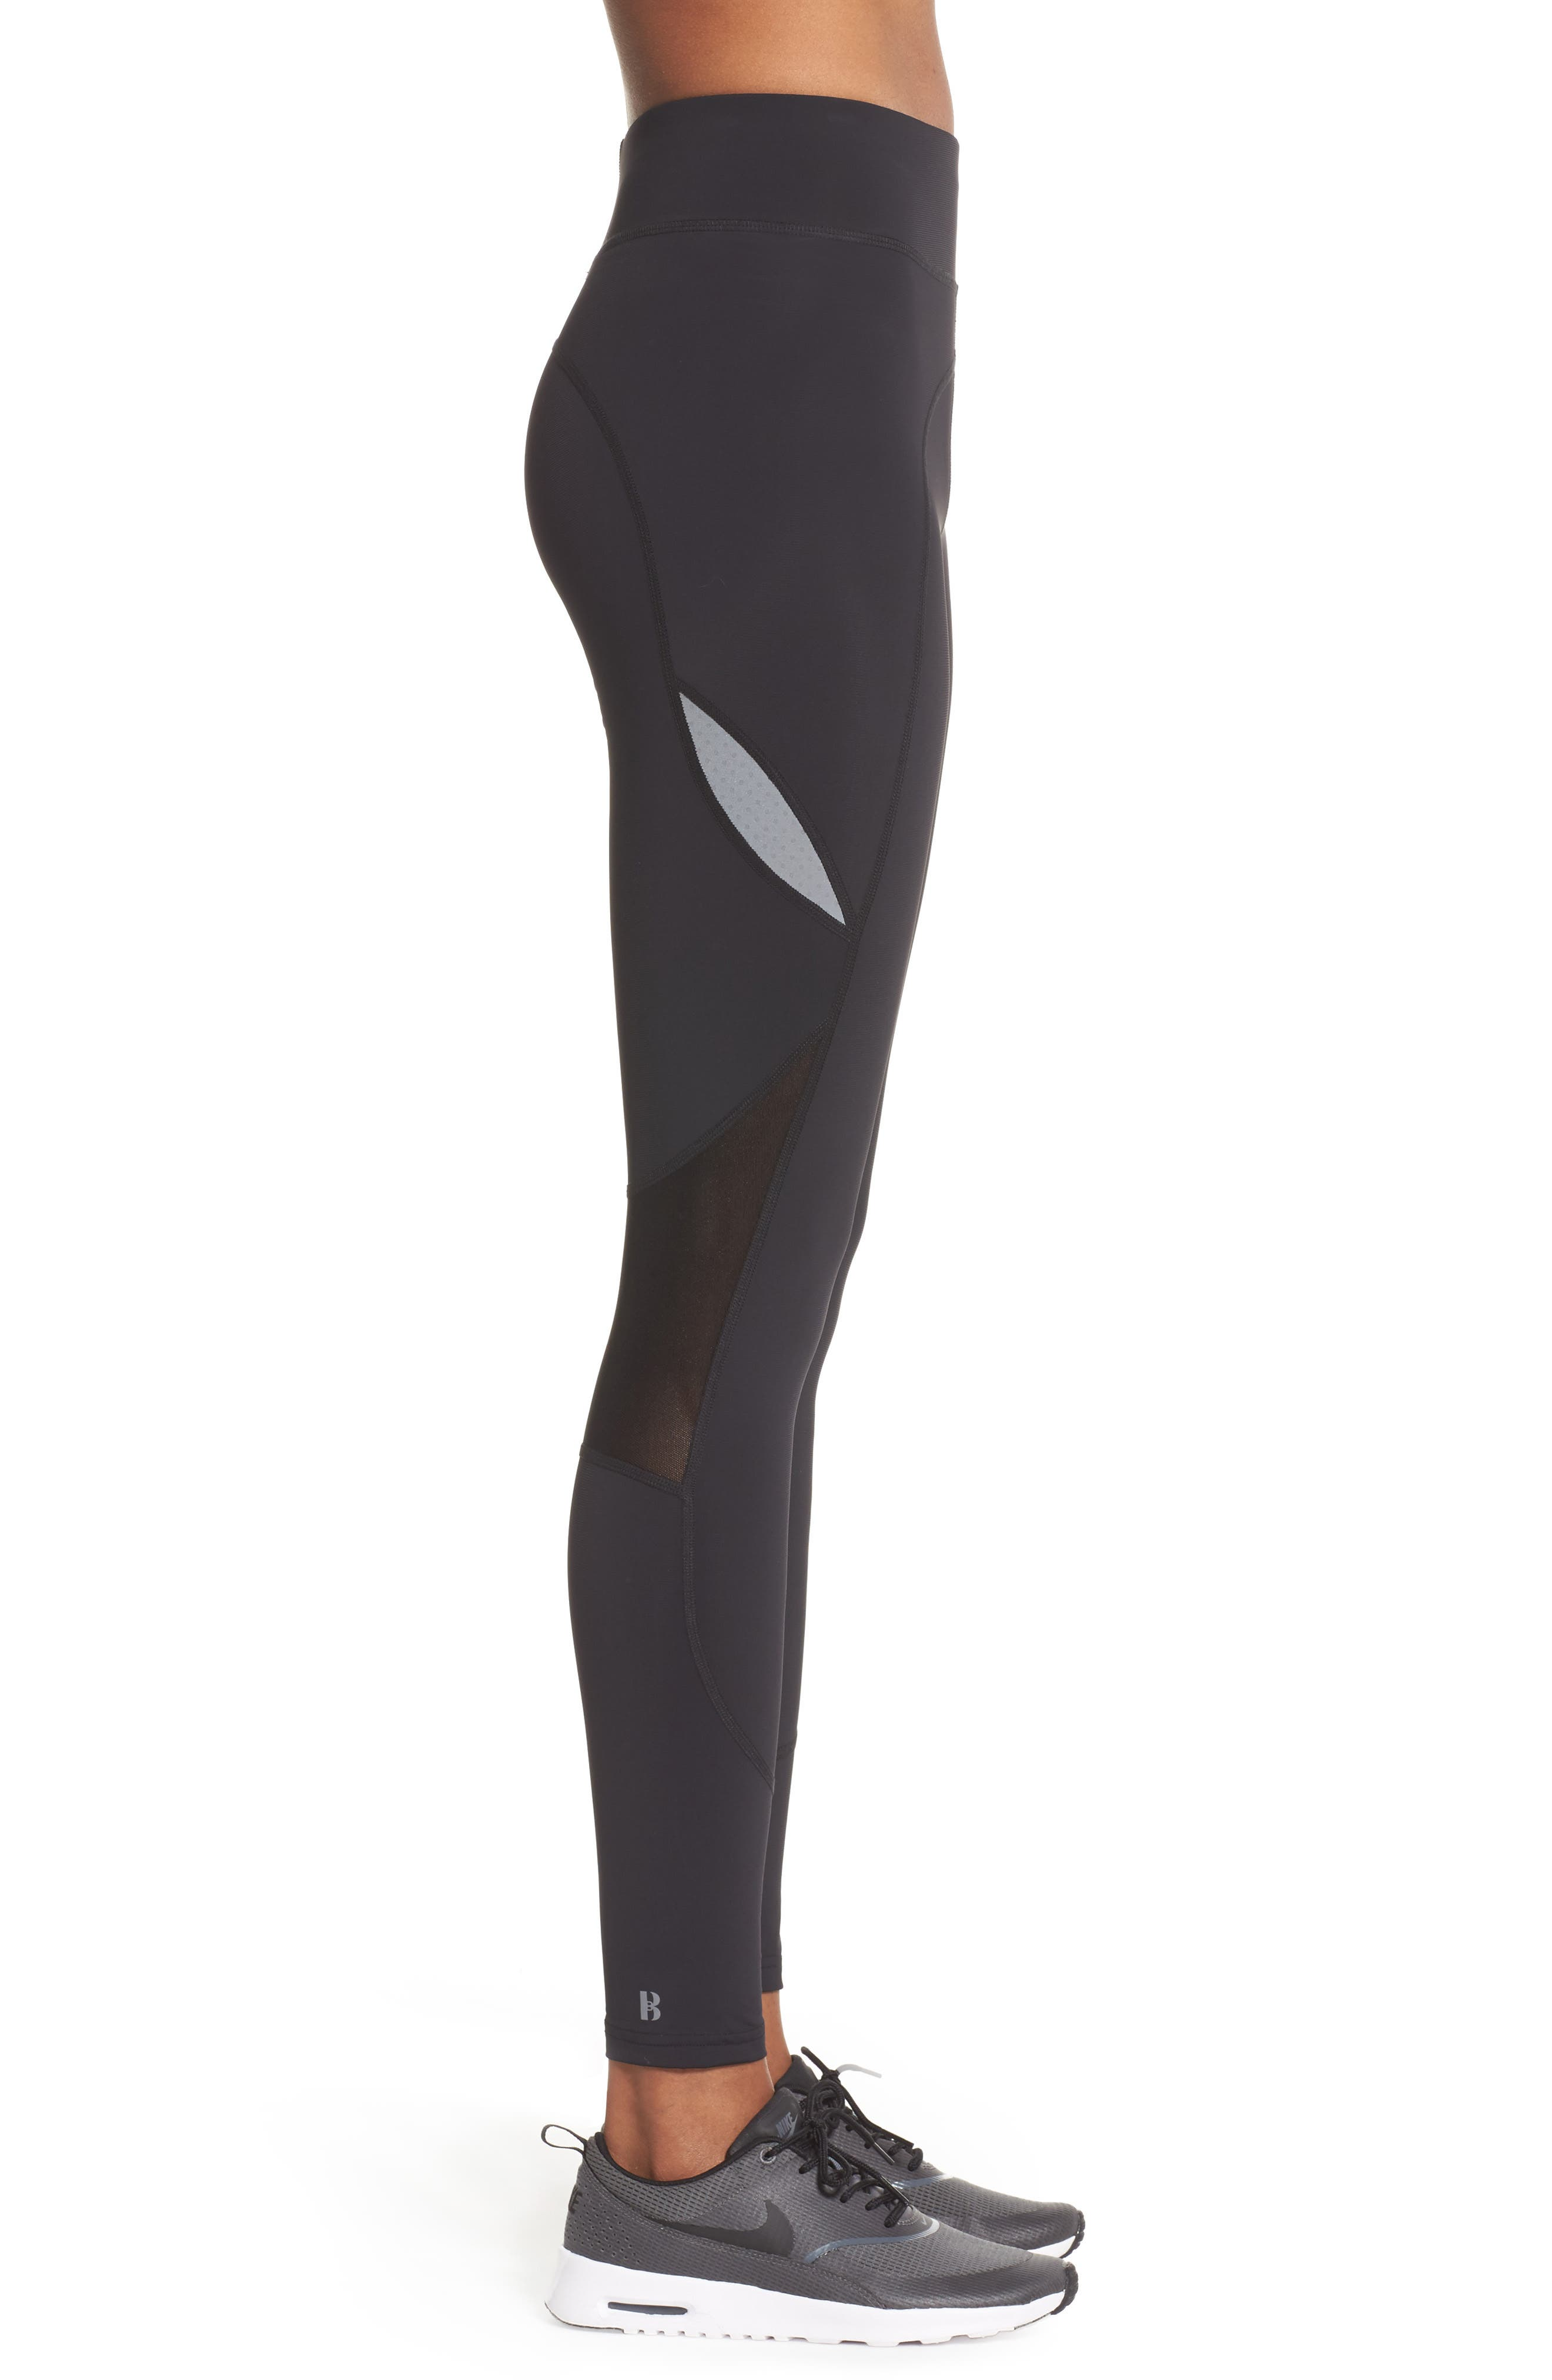 BoomBoom Athletica High Compression Sport Leggings,                             Alternate thumbnail 3, color,                             005